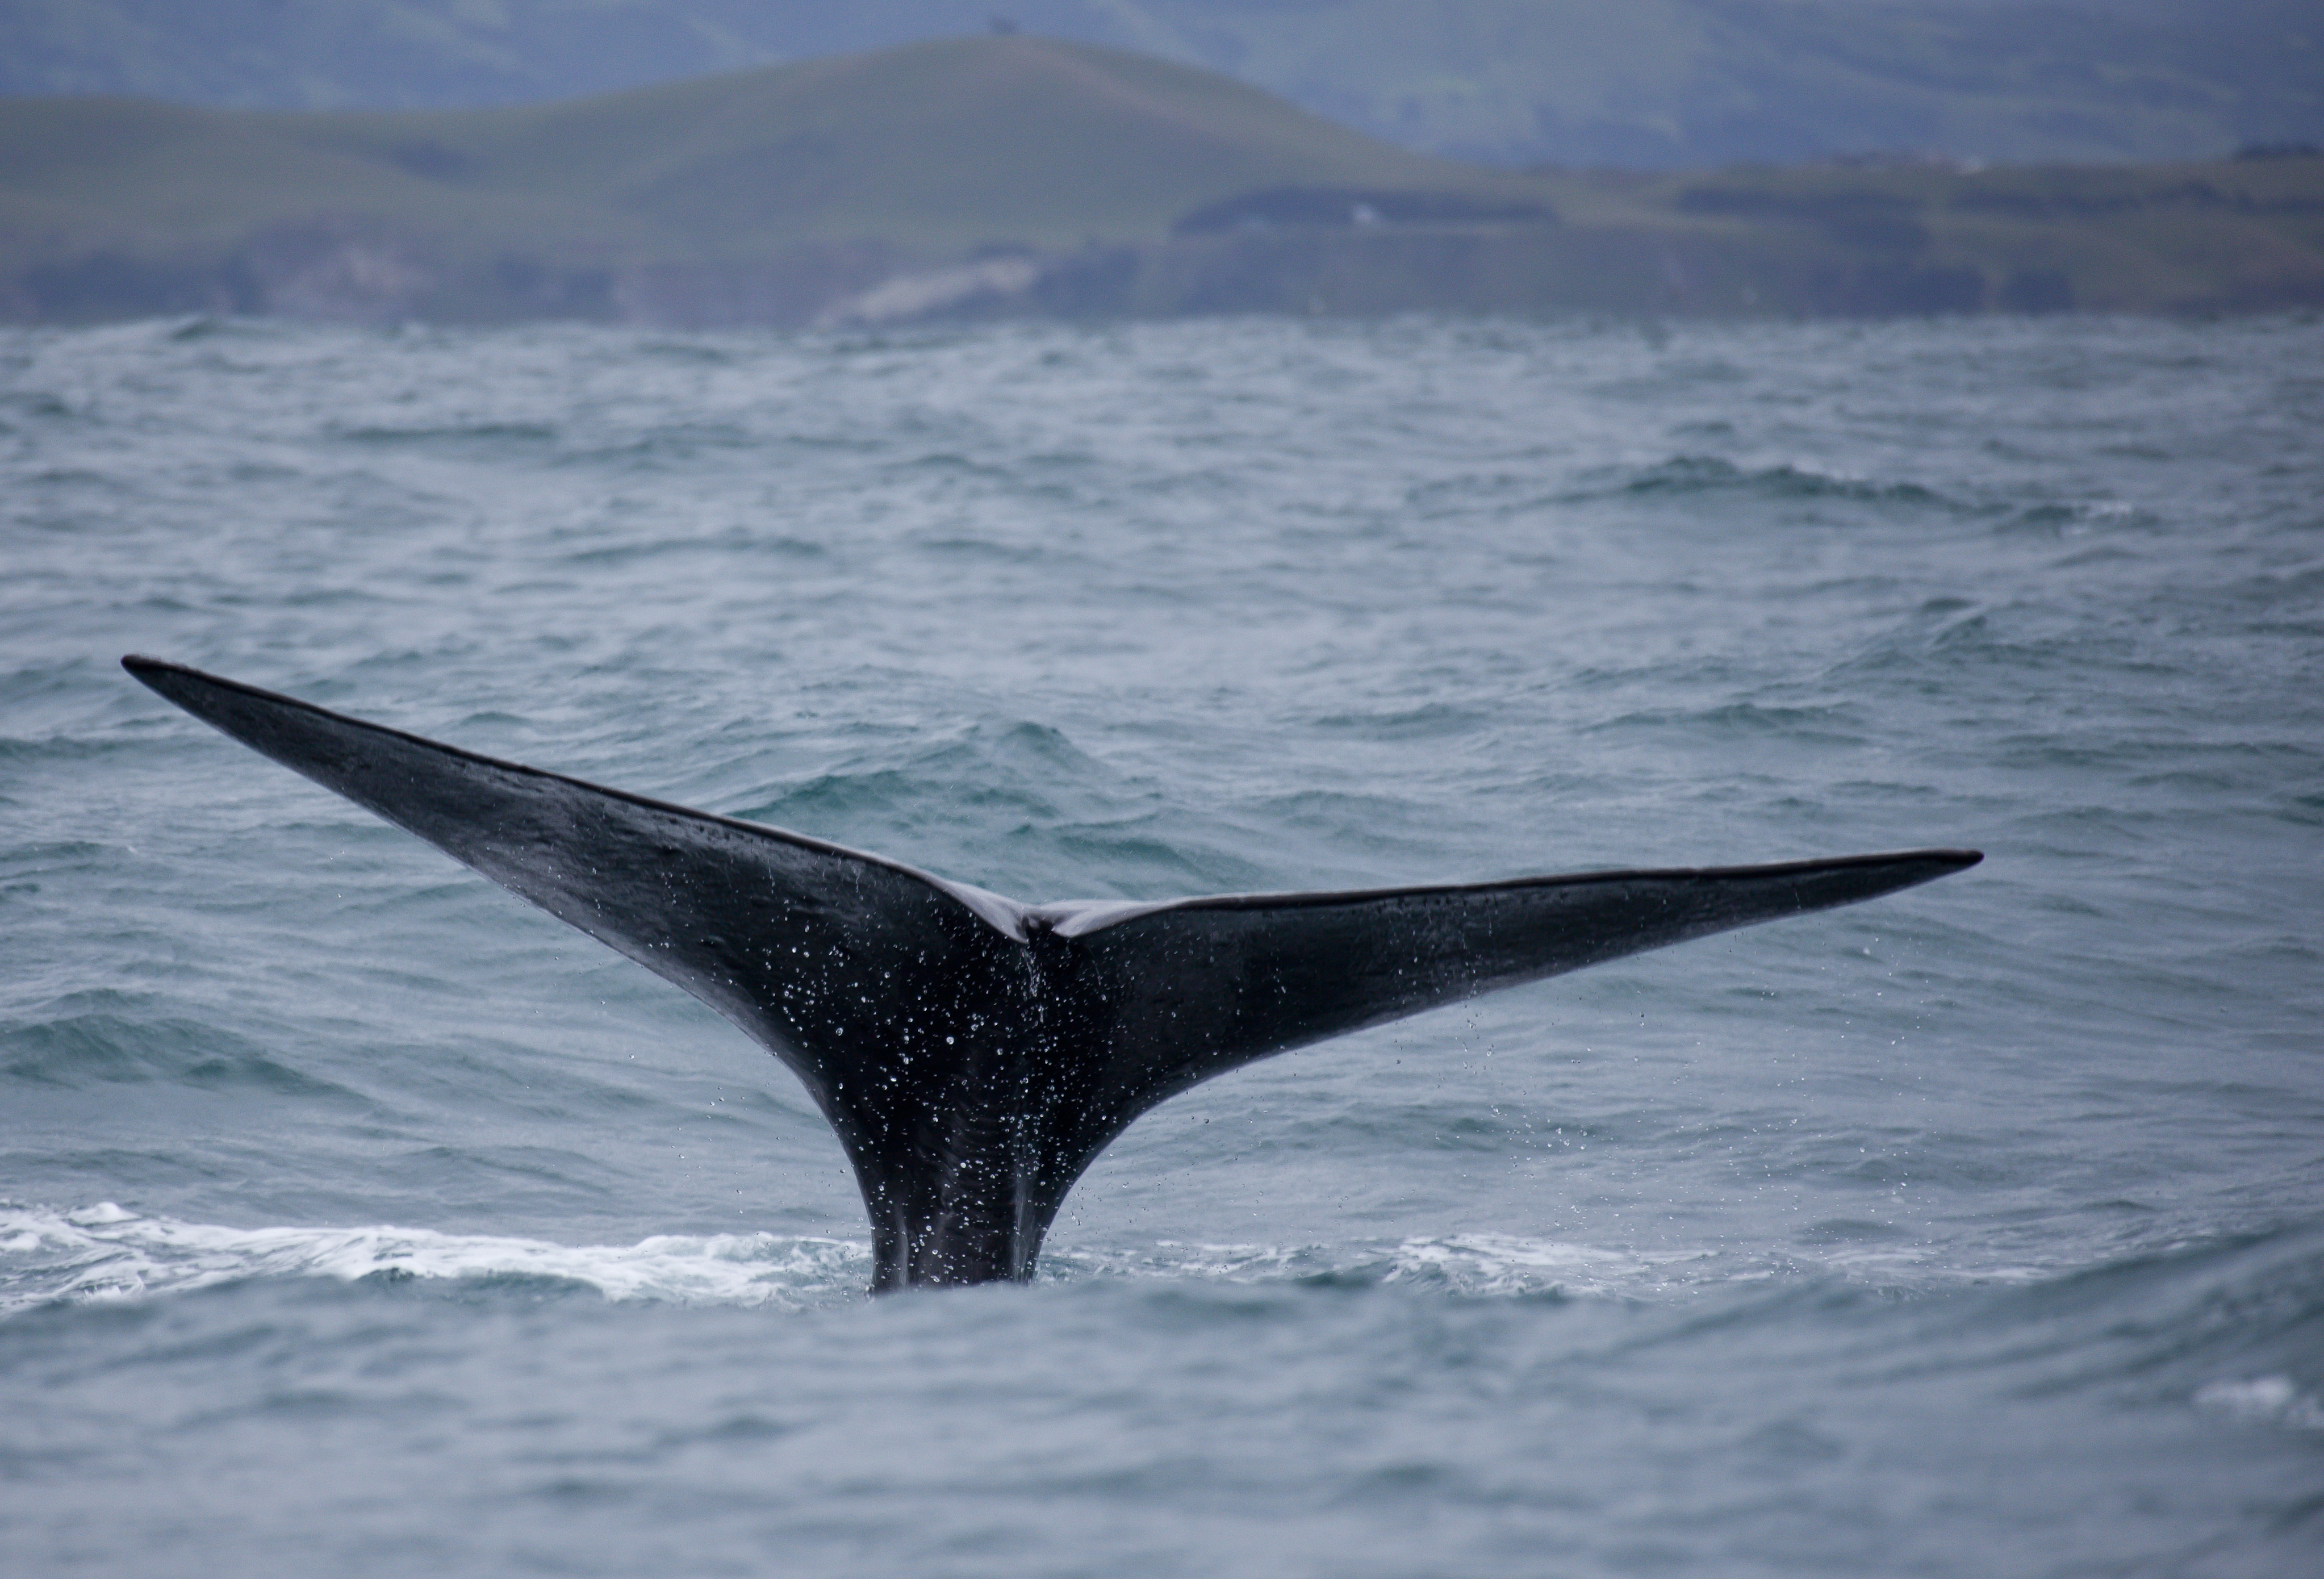 Whale song heard in NZ waters